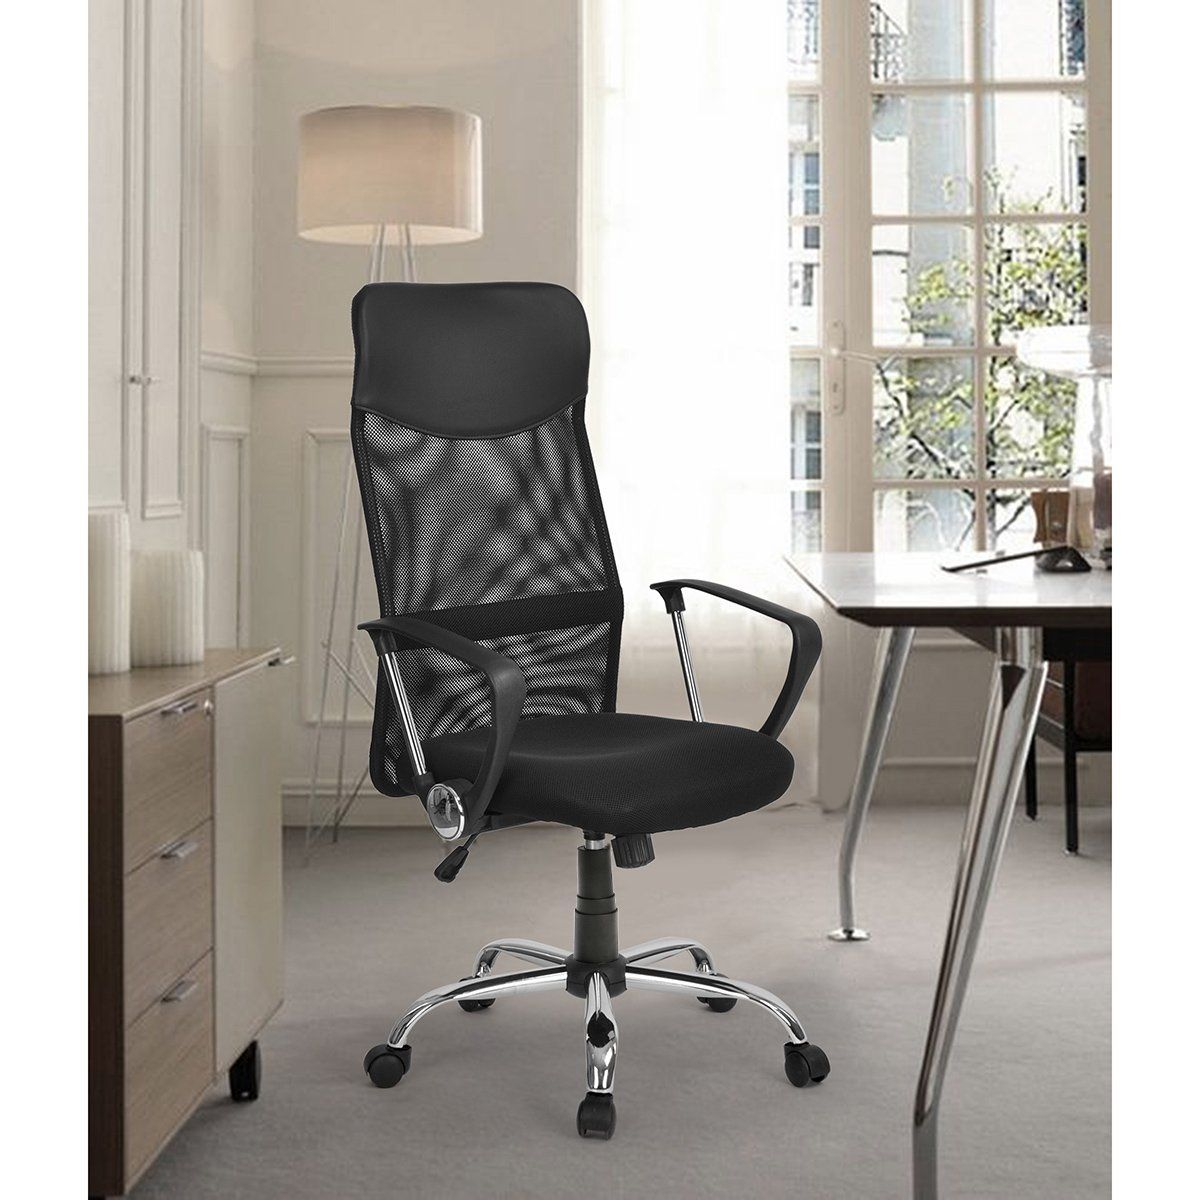 No Matter Where You Are, Our Modern Ergonomic High Back